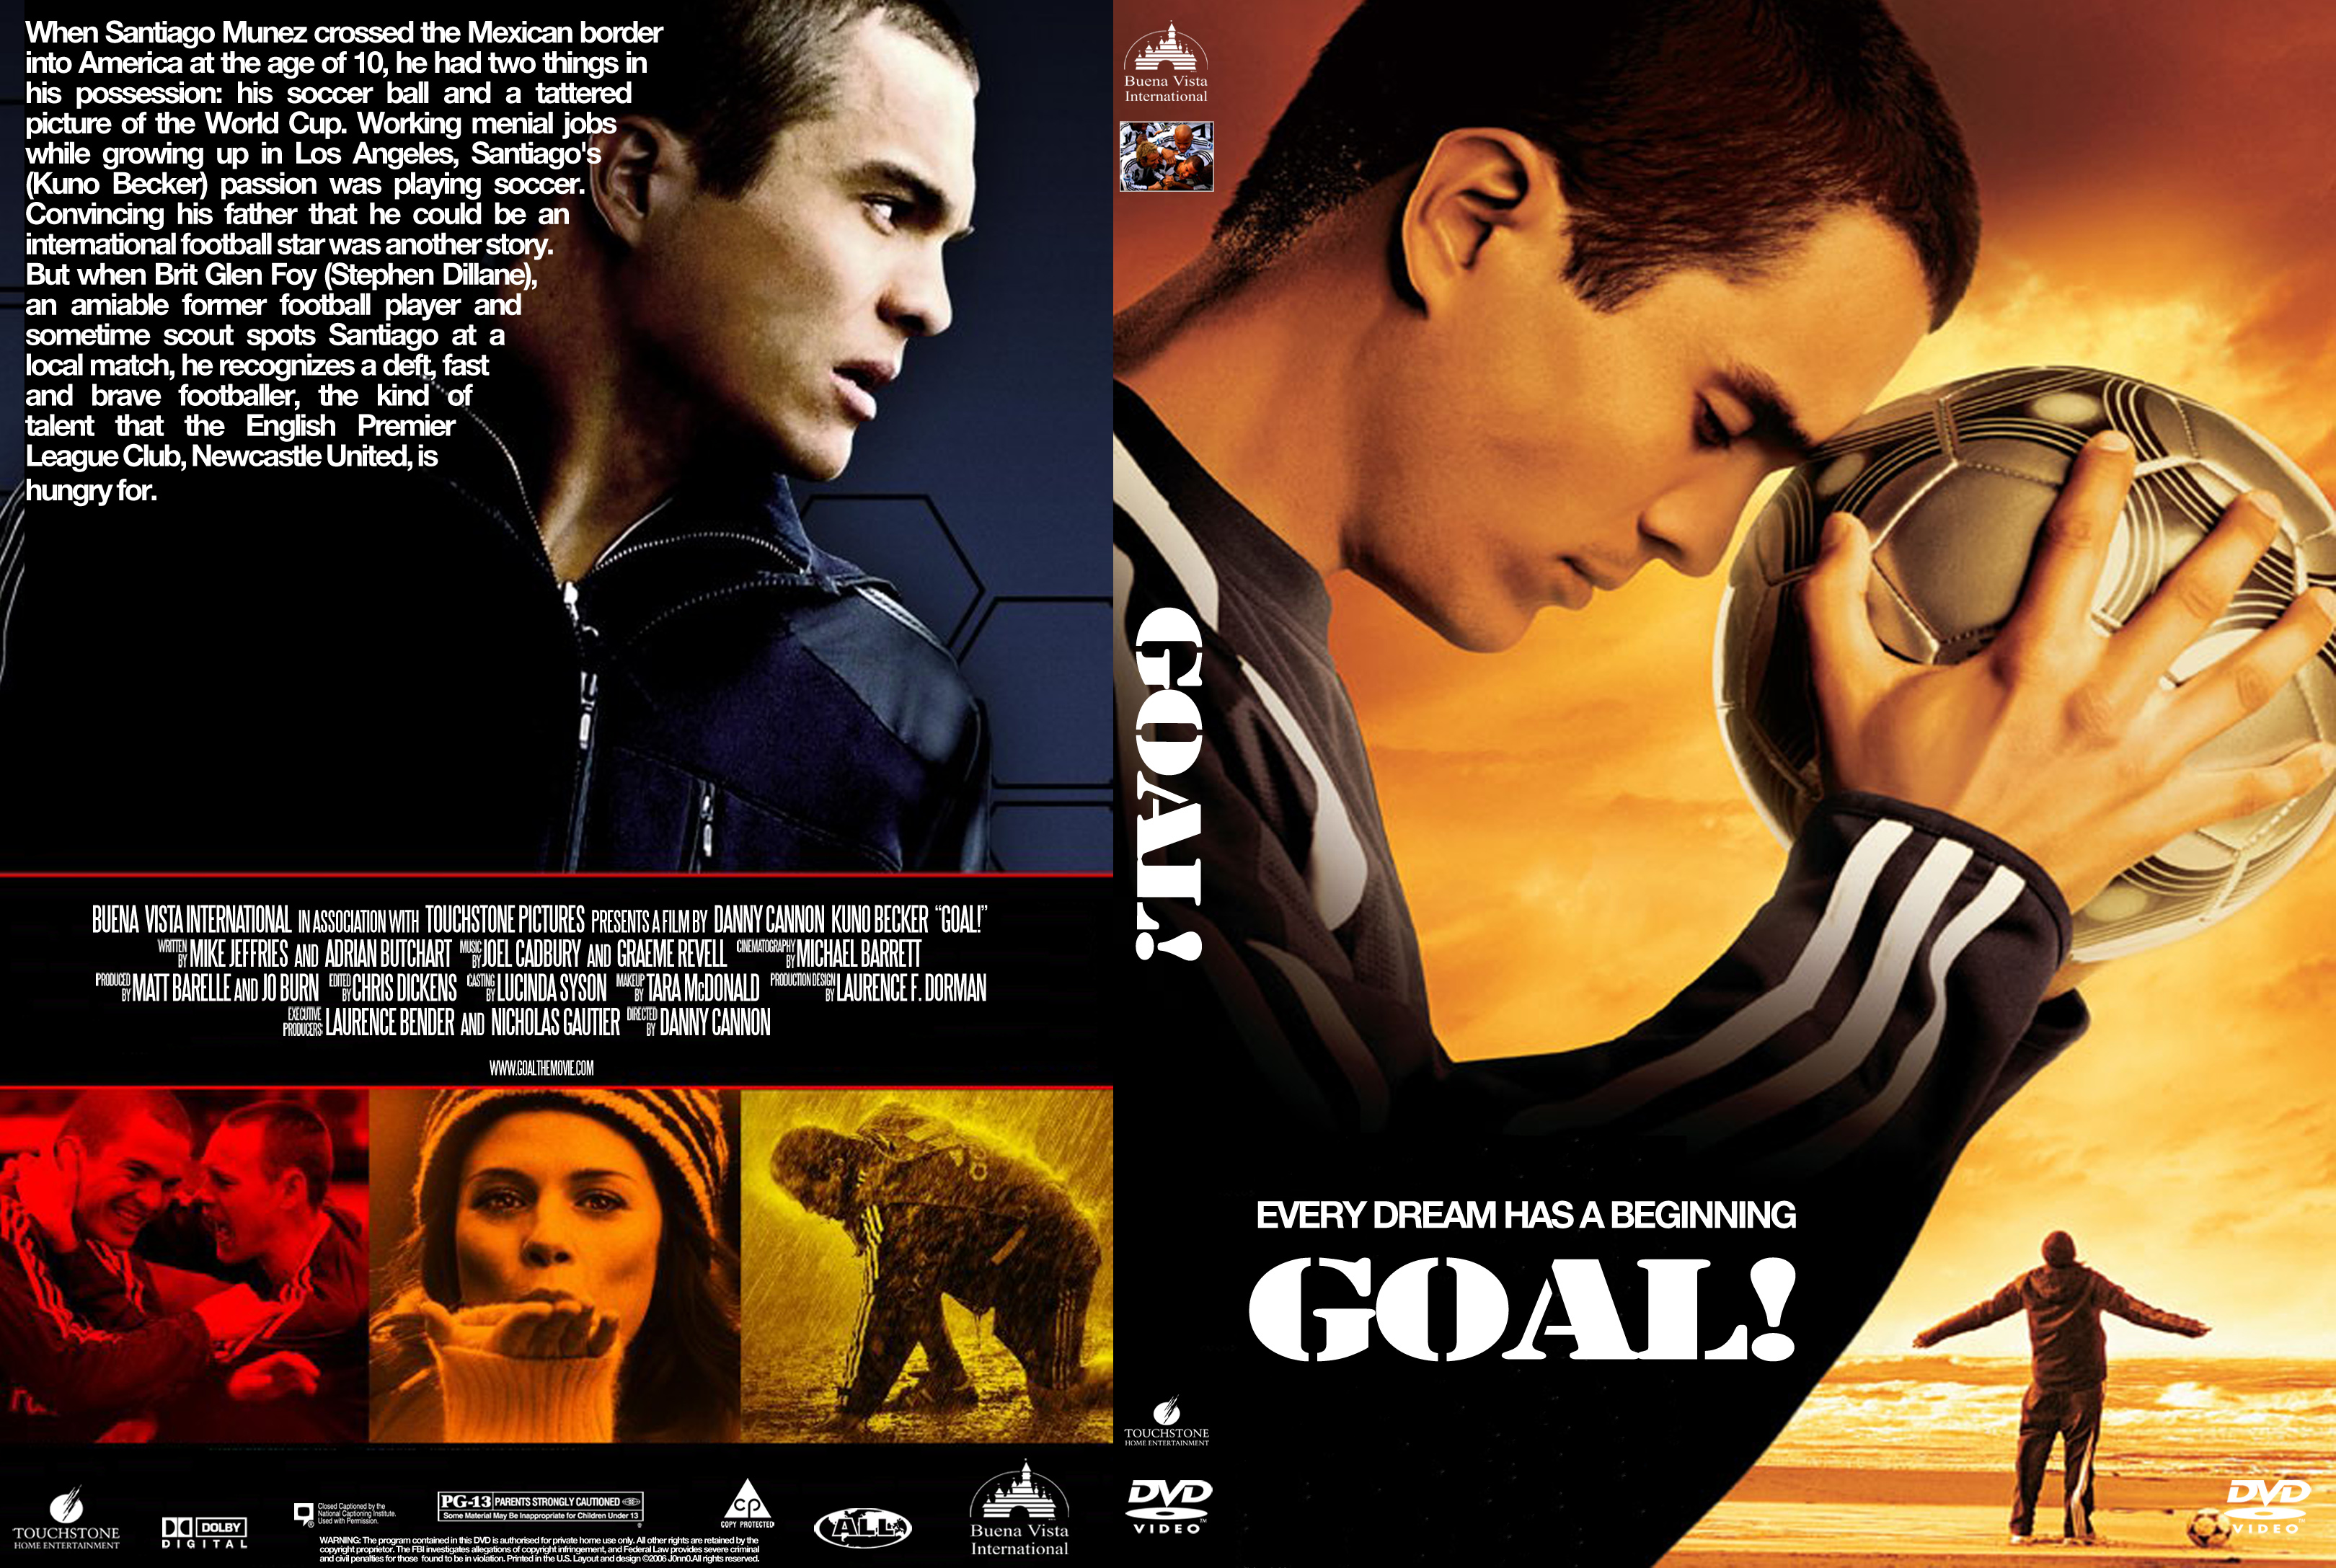 the goal movie the dream begins Goal the dream begins is a rags-to-riches sports saga containing all the usual elements, arranged in the usual ways, and yet it's surprisingly effective we have the kid from mexico who dreams of soccer stardom, his impoverished life in los angeles as an undocumented immigrant, his dad who scorns soccer, his grandmother who believes in him.